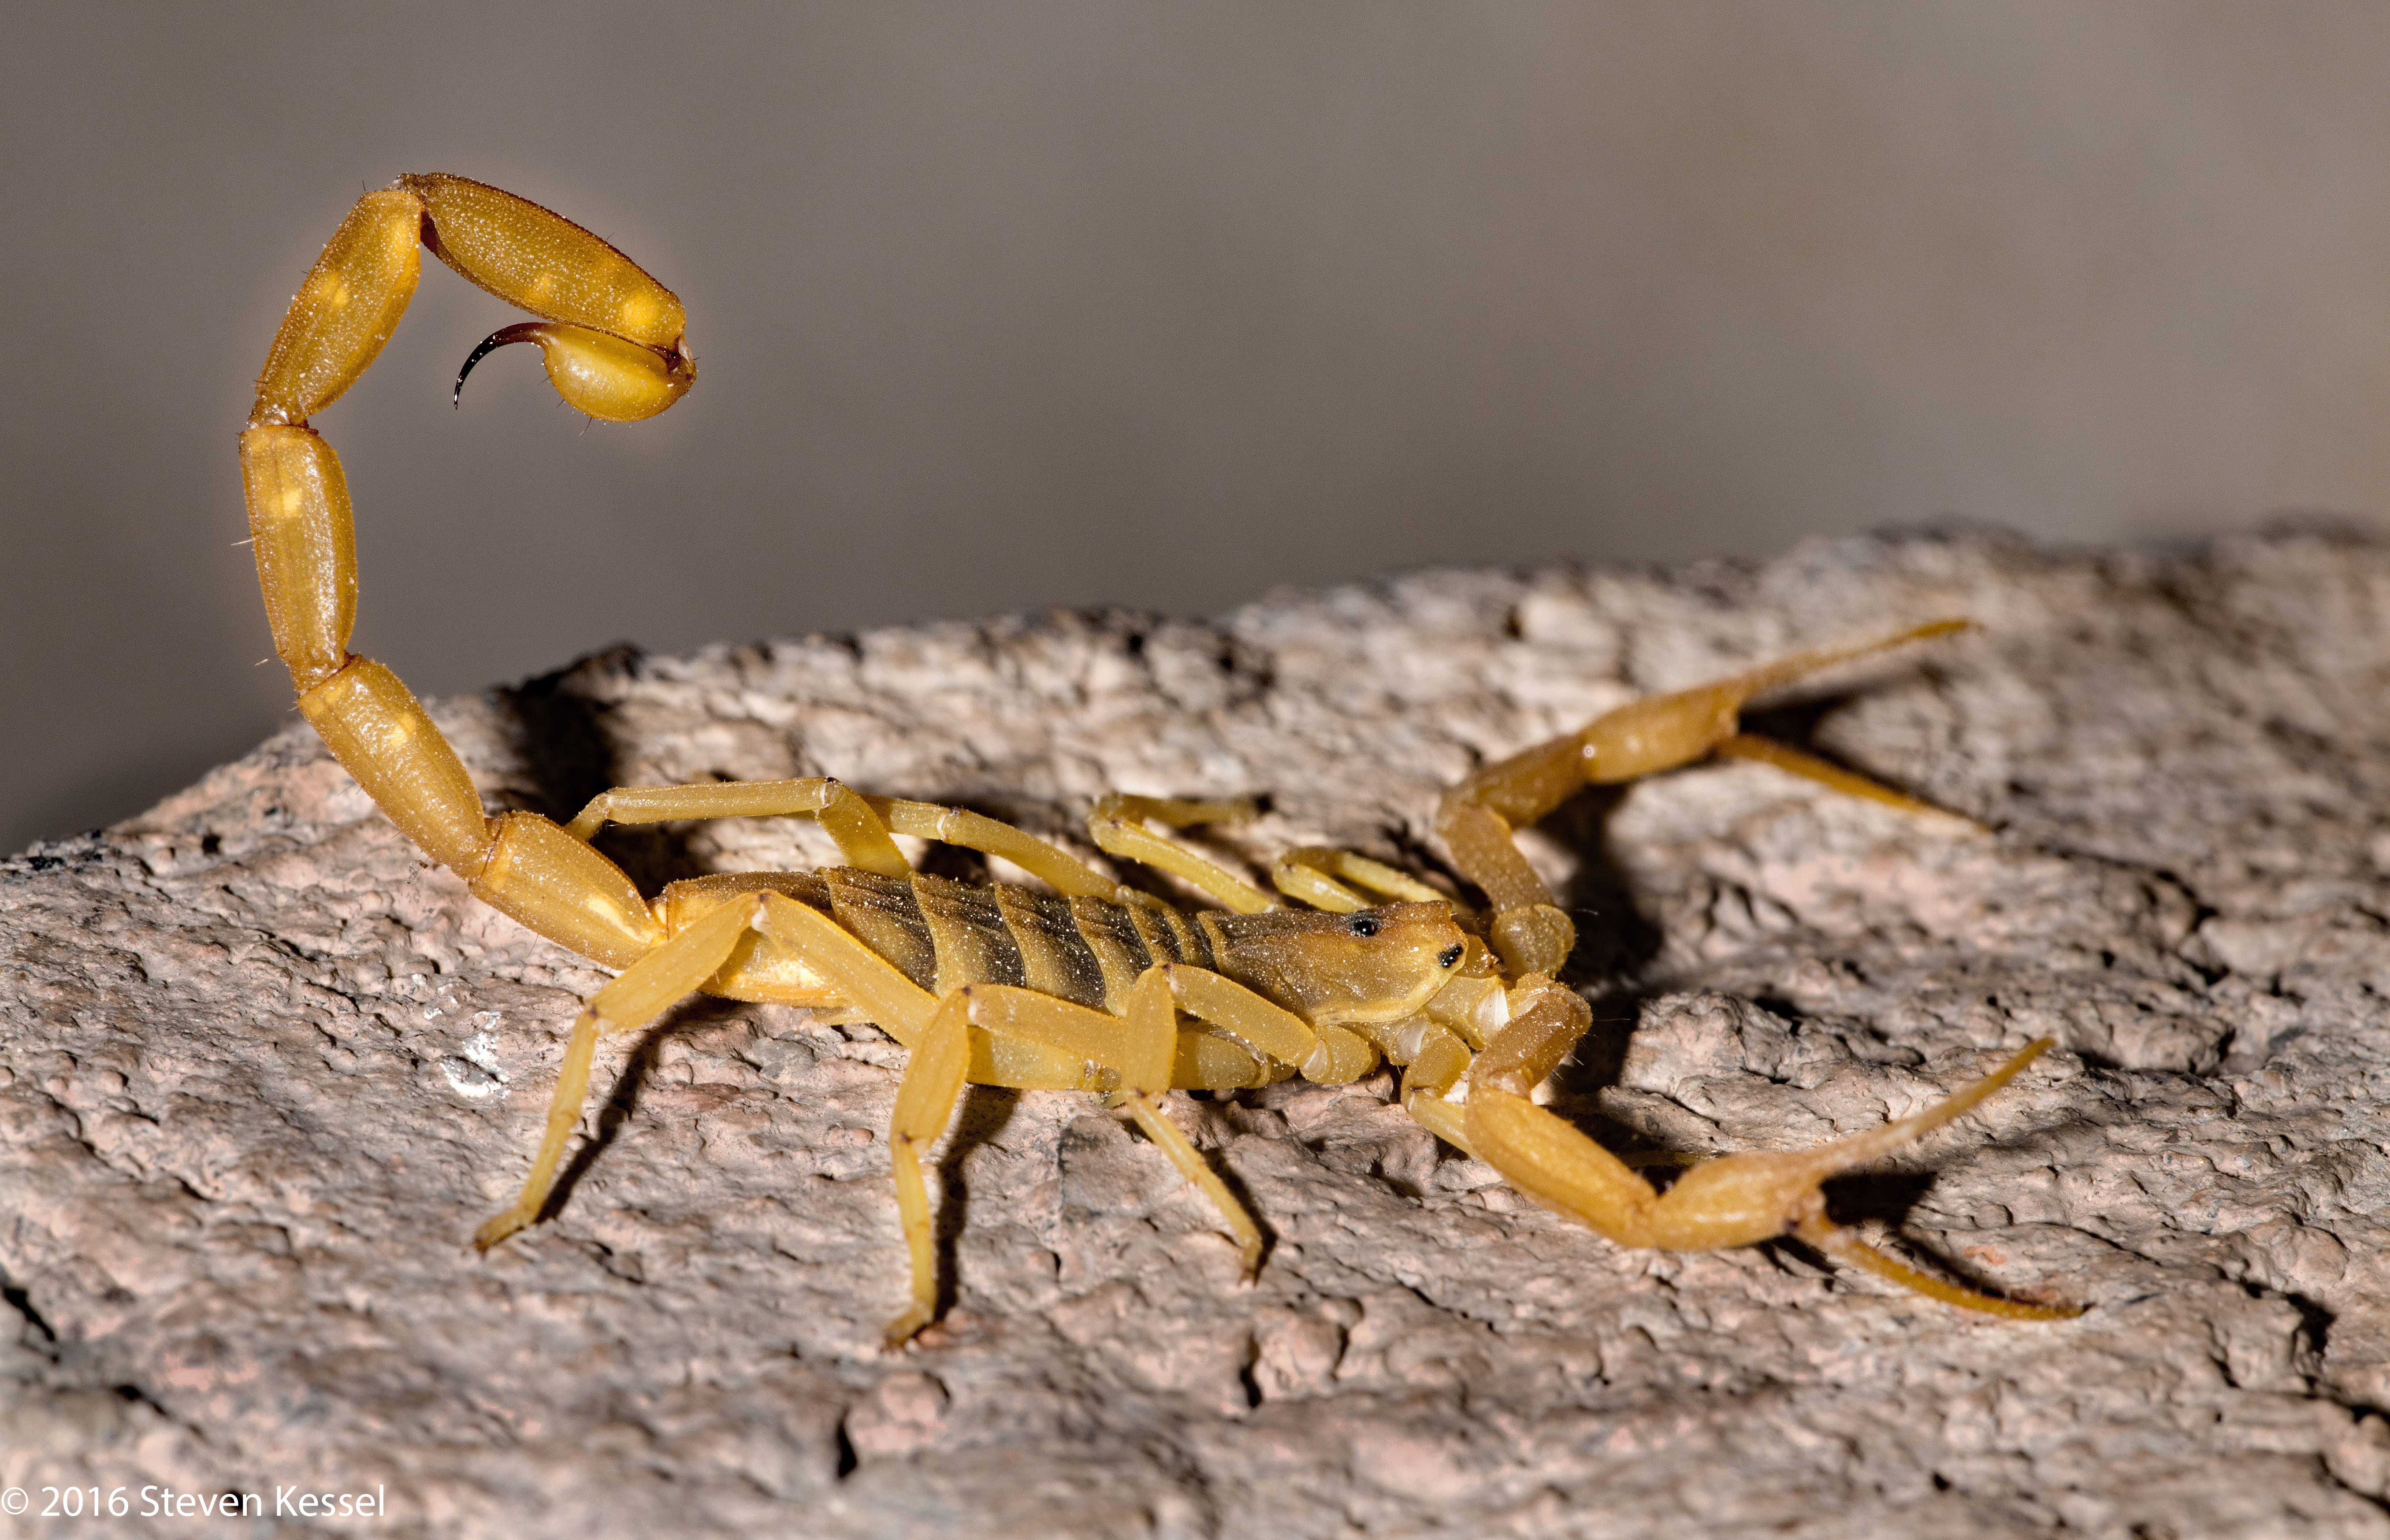 Striped-Tailed vs  Bark Scorpion | Sonoran Images